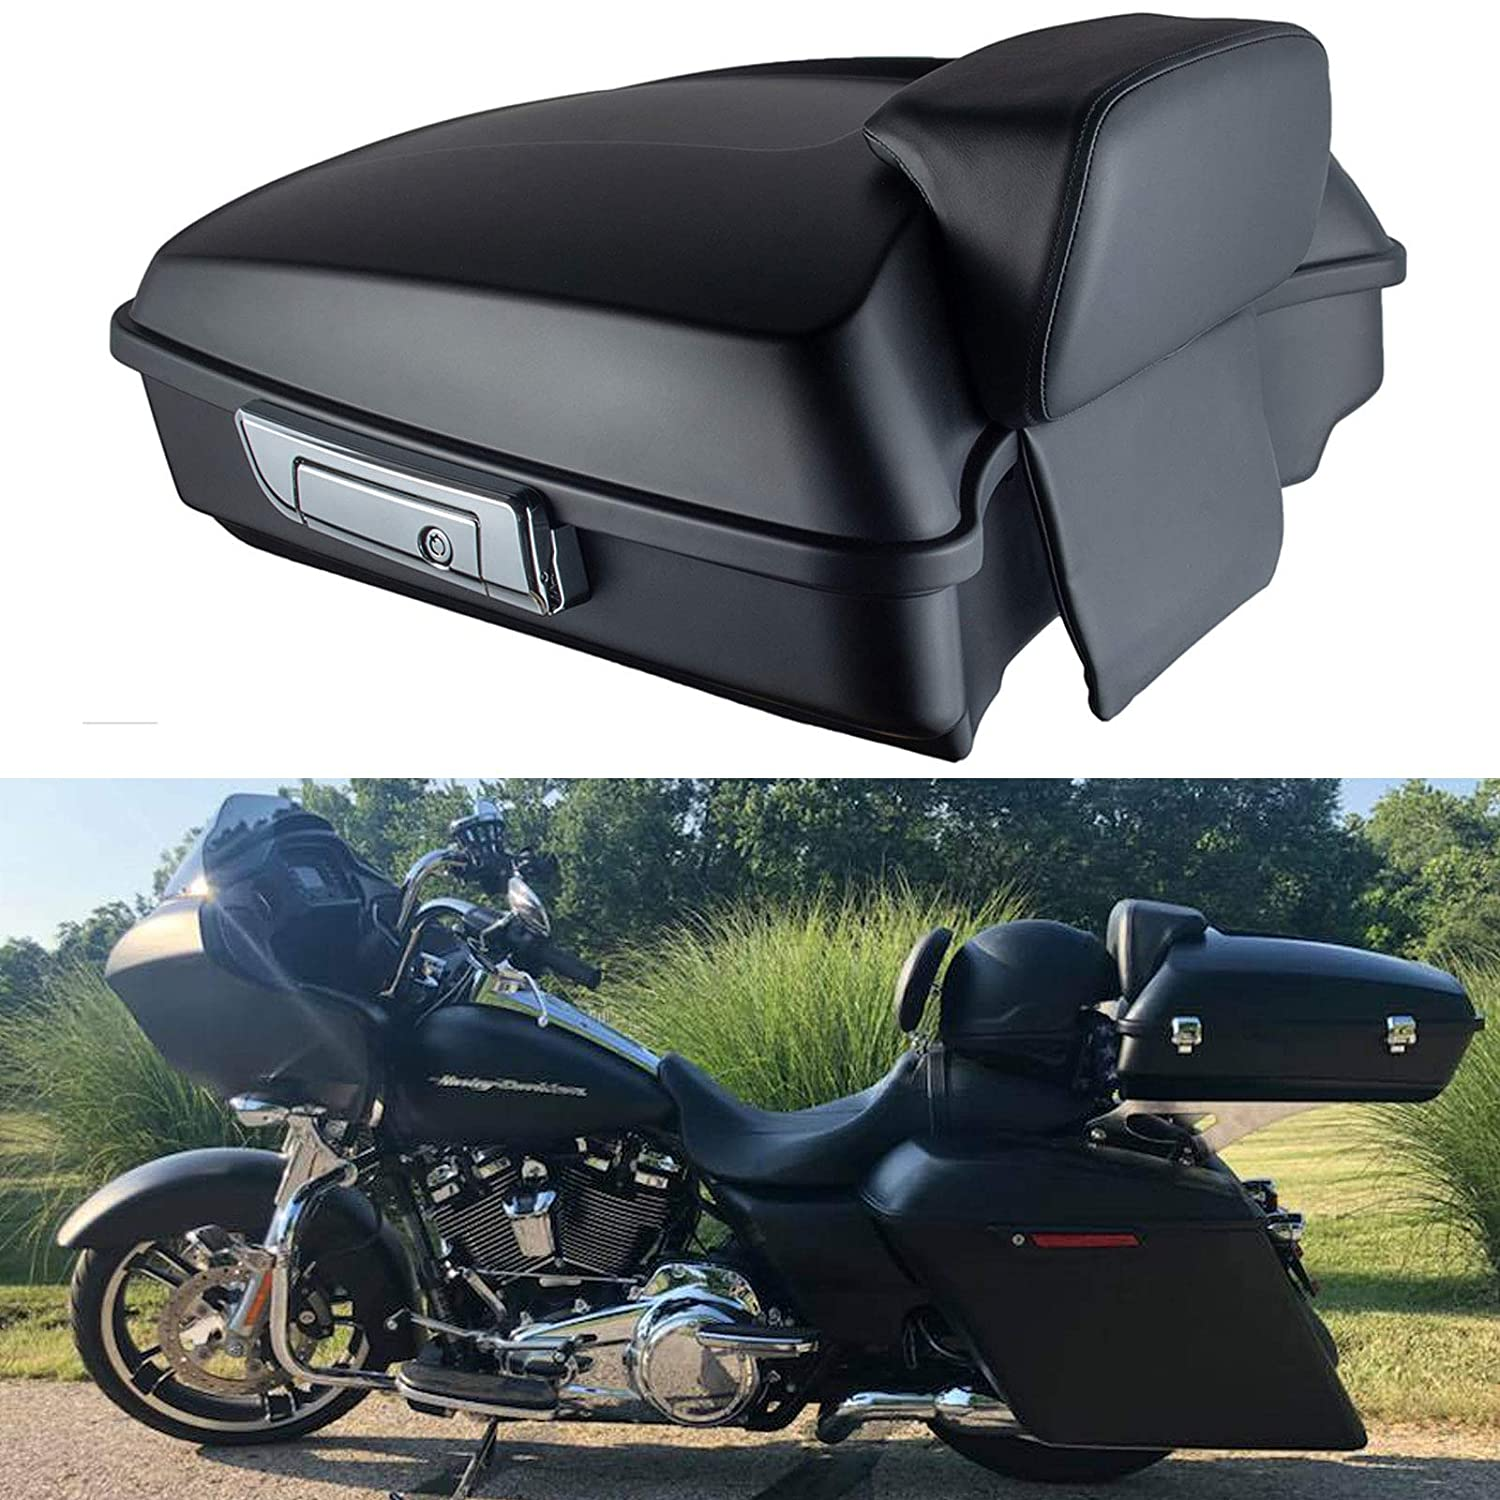 Matte Chopped Tour Pak Pack Trunk W// Latch For Harley Touring Road King 2014-Up